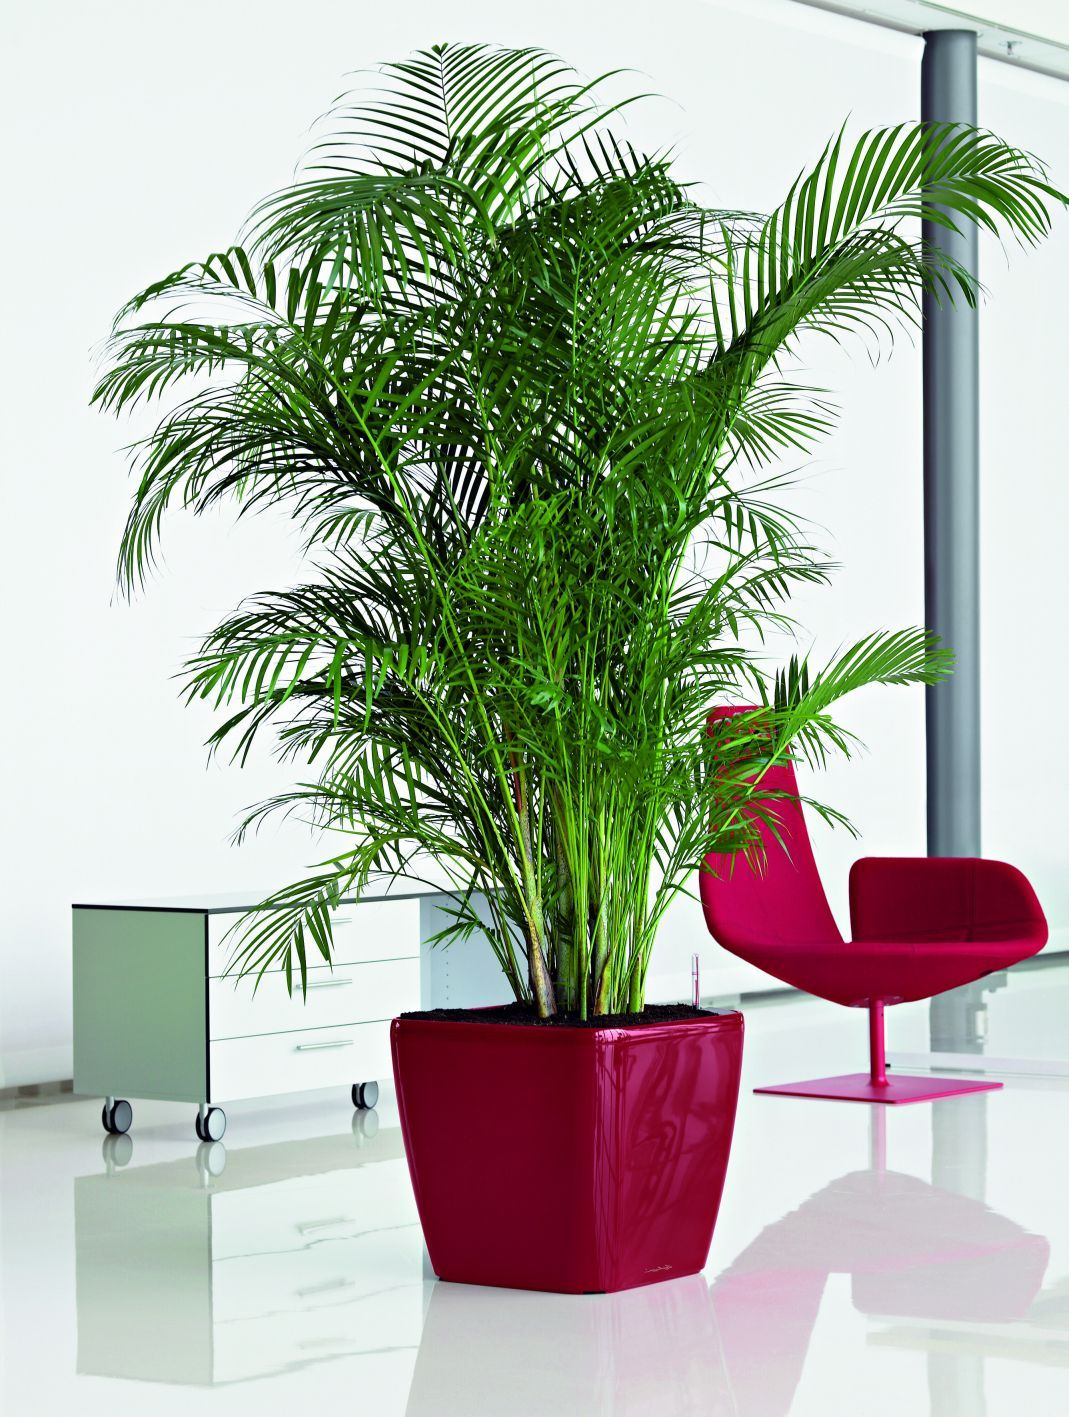 Quadro 43 Scarlet Red interior with palm.jpg